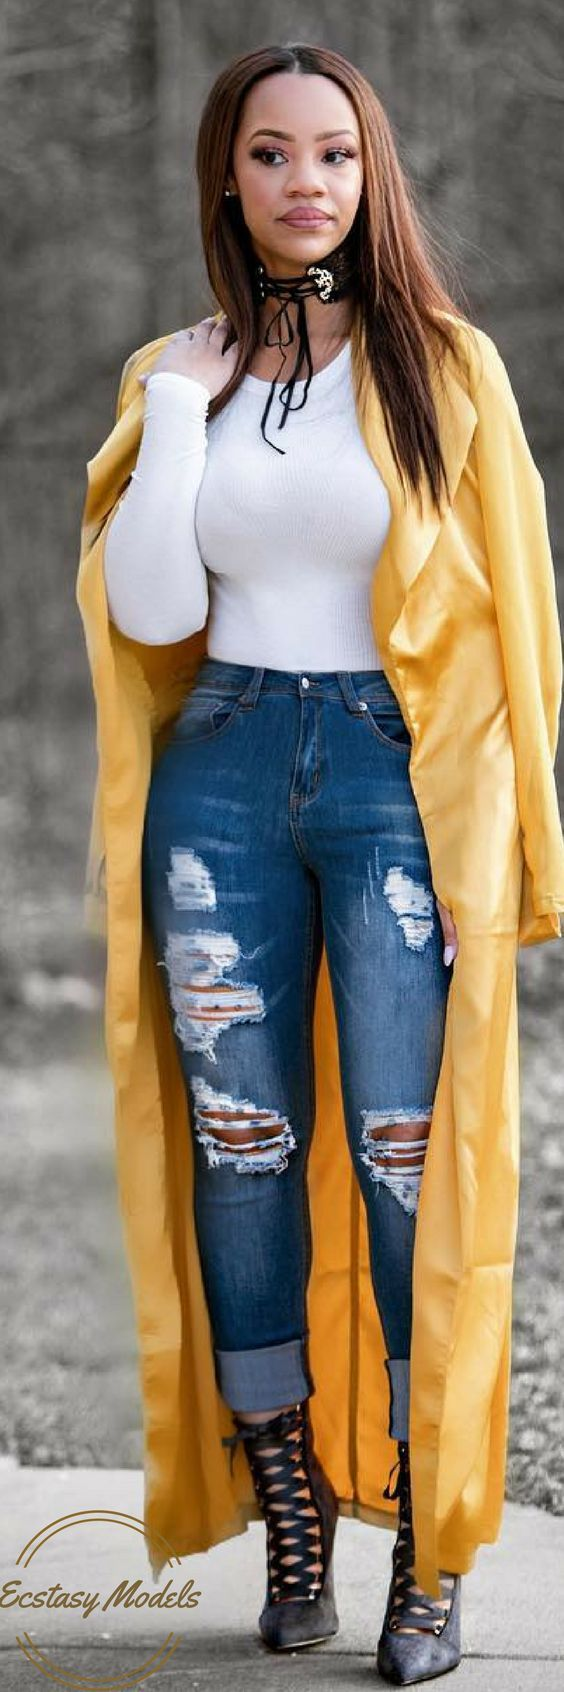 Nice Fashion fashion jeans VIBRANCE // Outfit from Windsor Store // Fashion Look by Brittany... Check more at http://24myshop.tk/my-desires/fashion-fashion-jeans-vibrance-outfit-from-windsor-store-fashion-look-by-brittany/